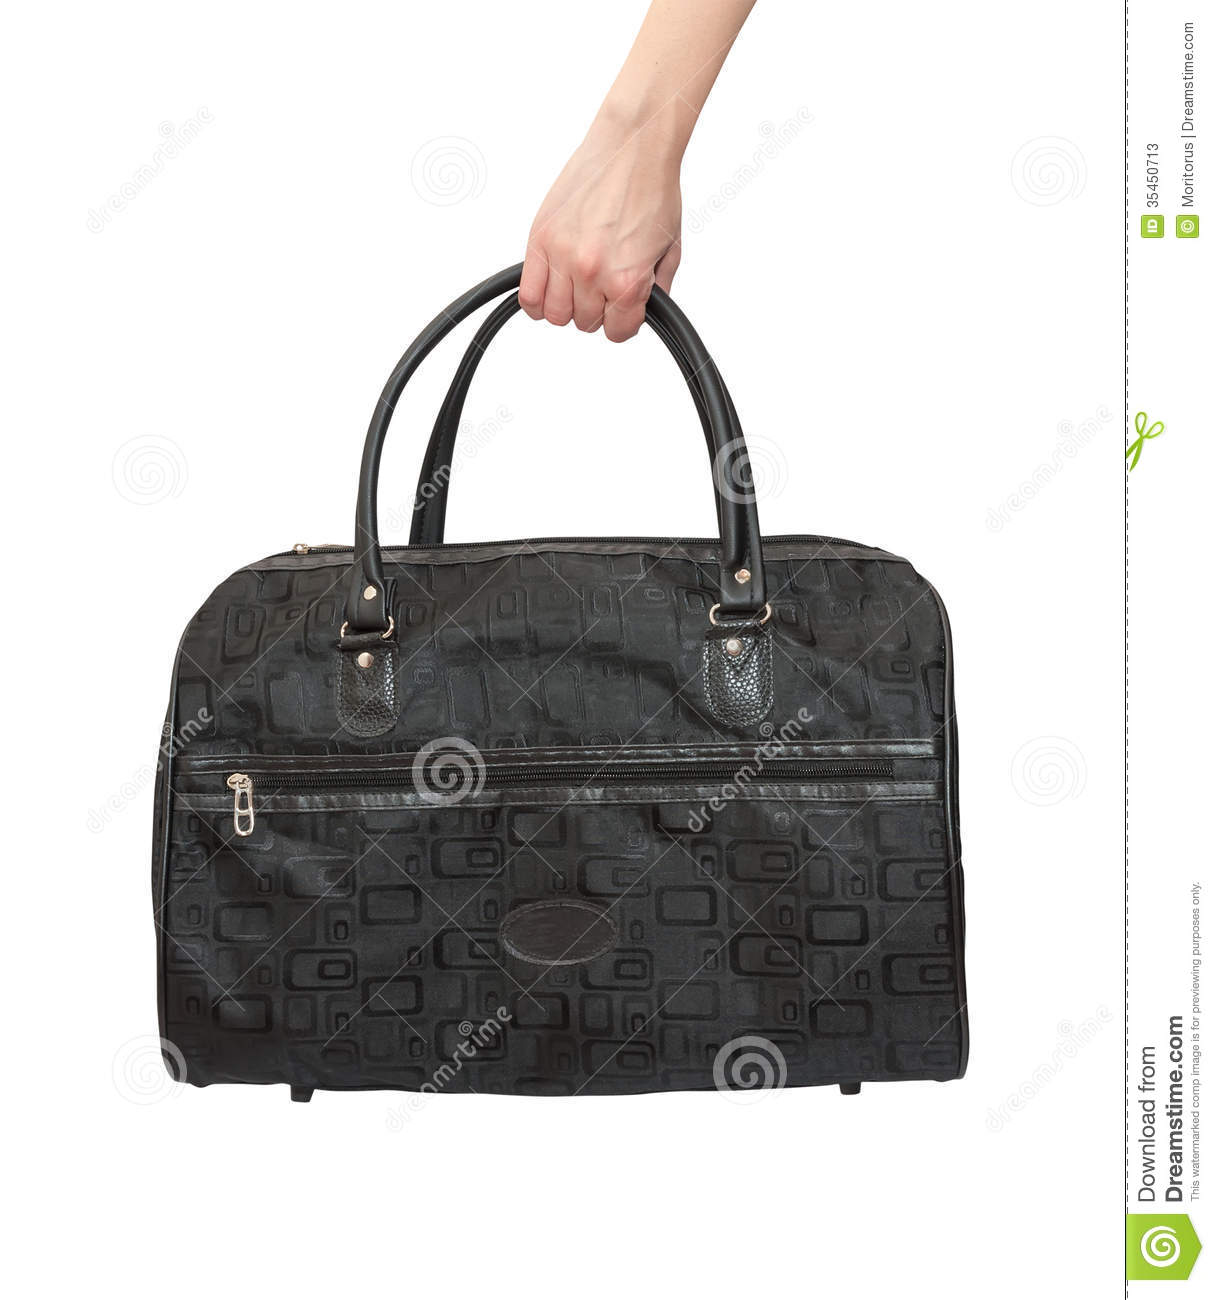 Bag In Hand Stock Photos - Image: 35450713